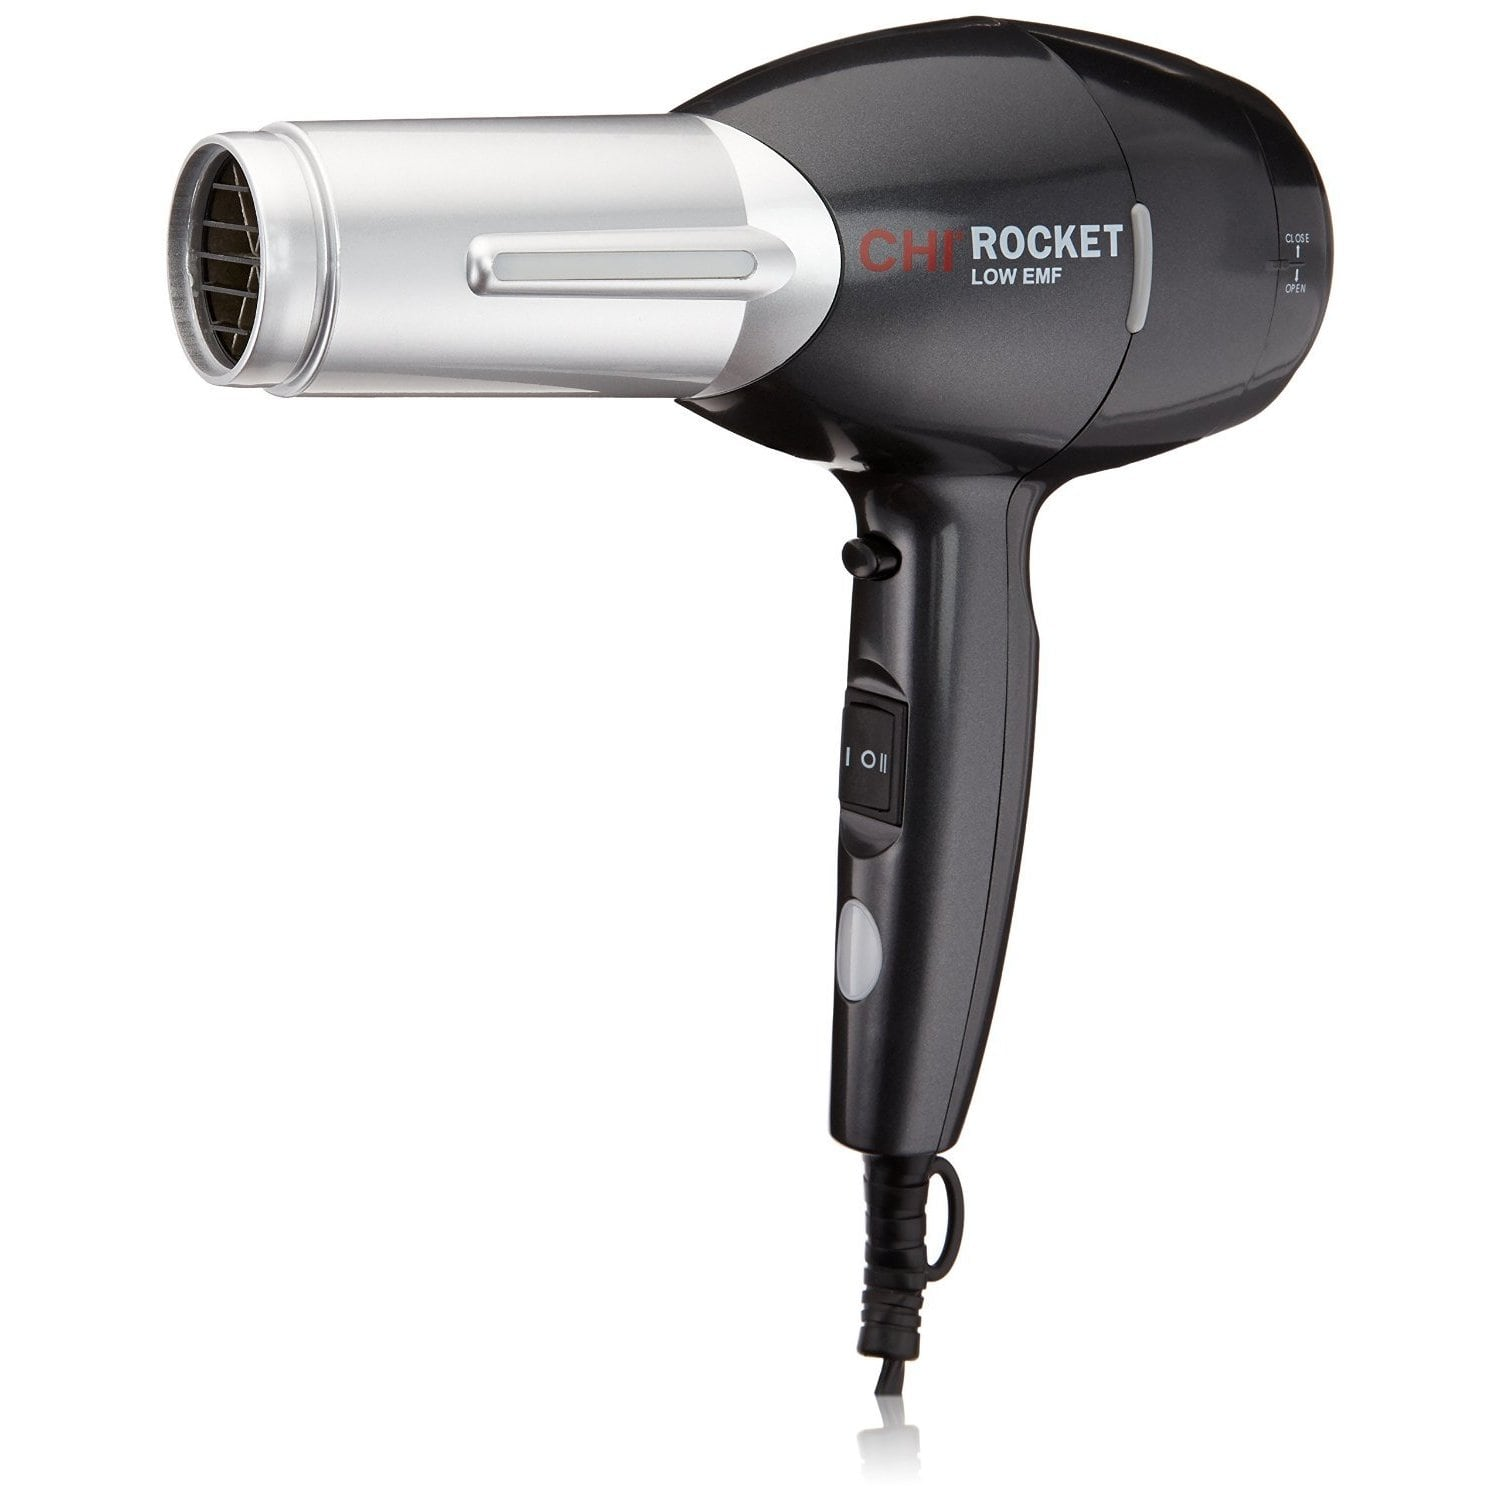 chi hair dryer chi rocket professional hair dryer walmart 13139